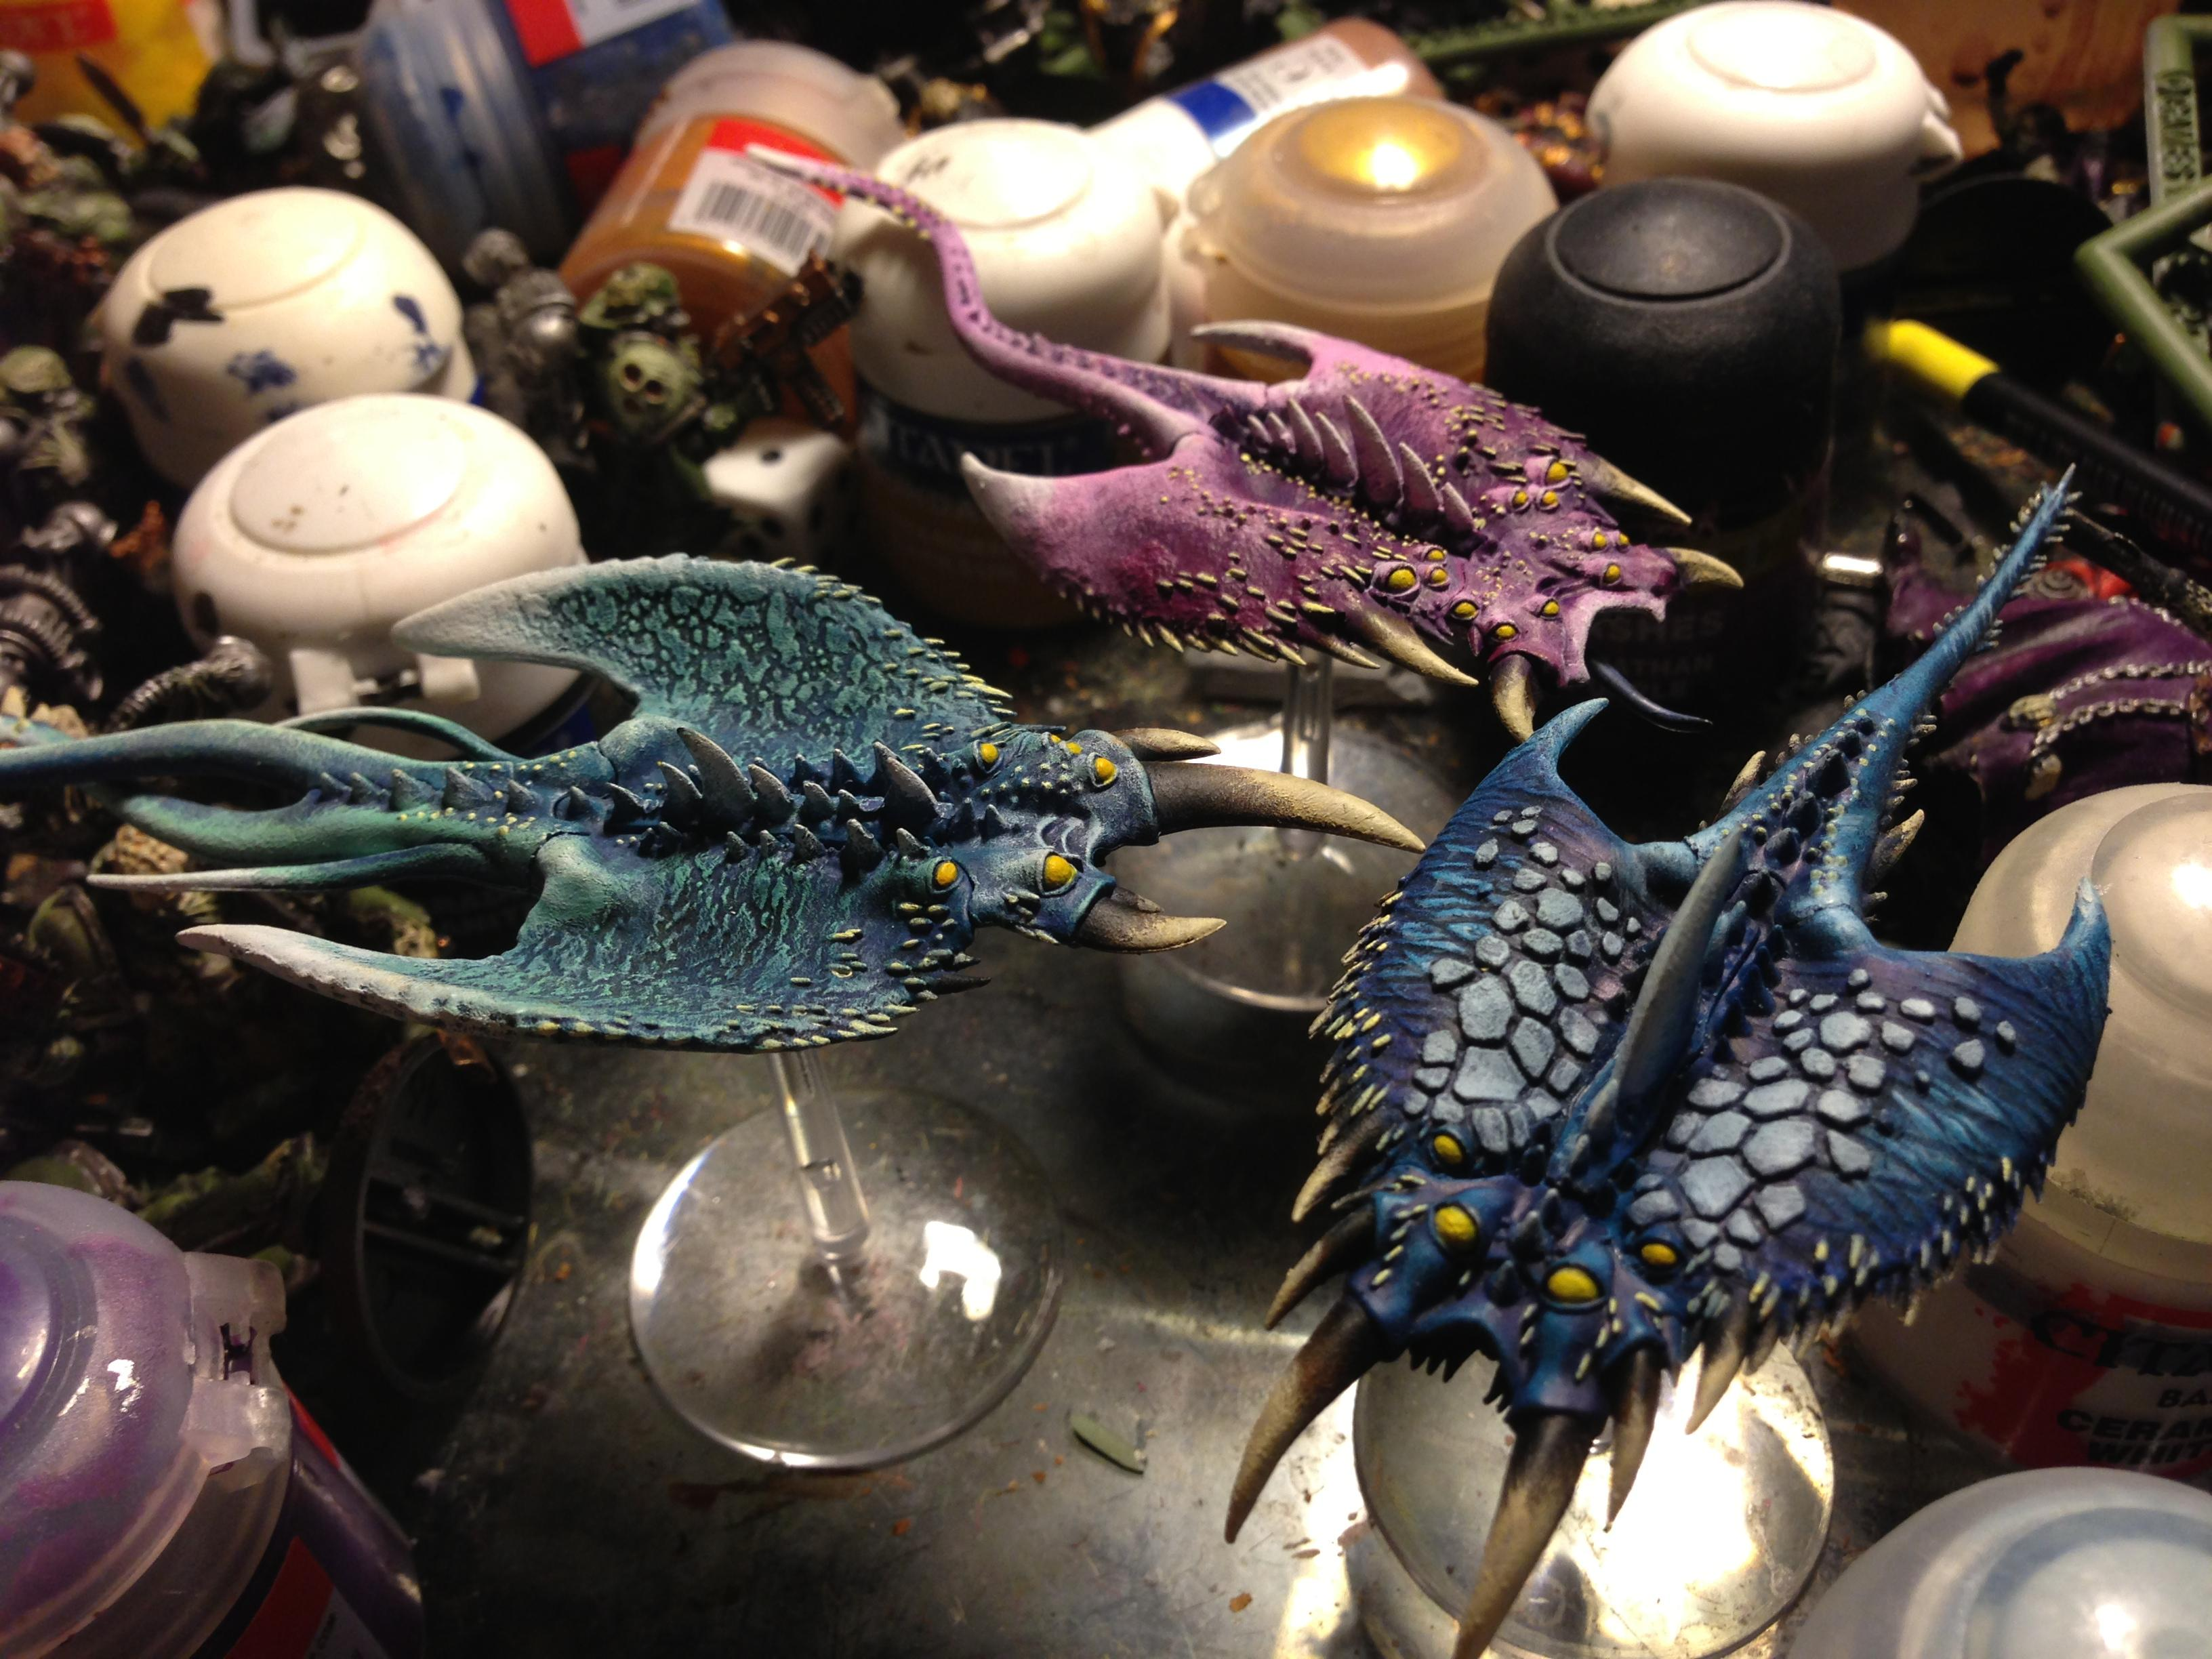 Chaos, Daemons, Screamers, Tzeentch, Warhammer 40,000